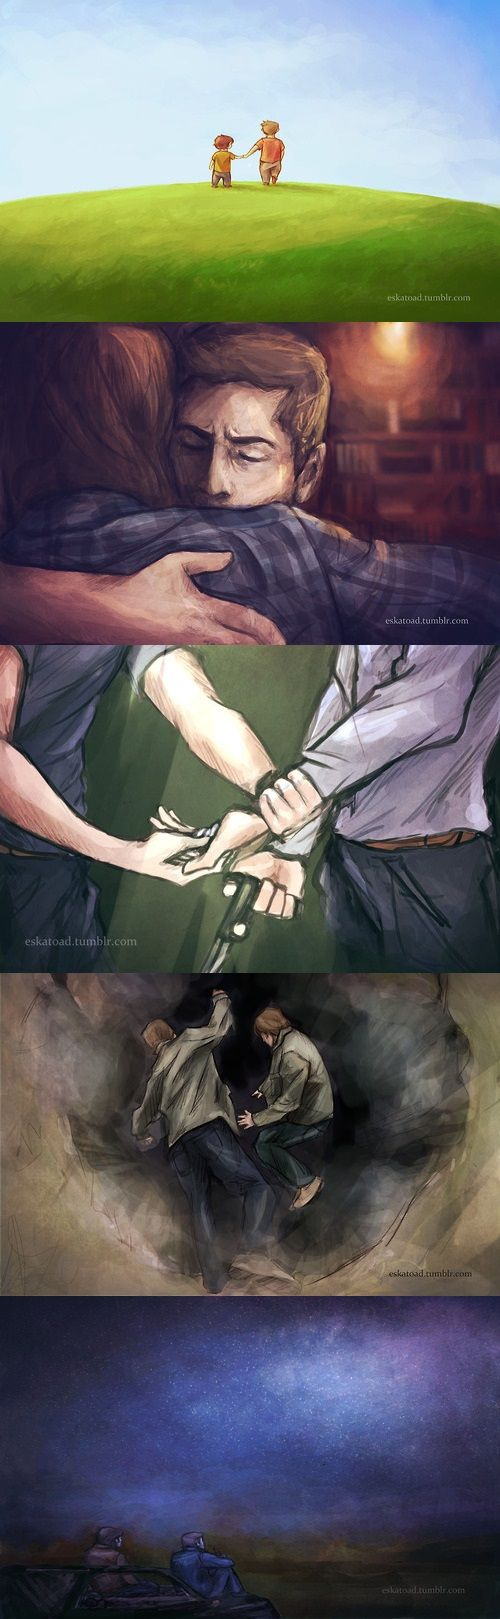 ♪We were opposites at birth. I was steady as a hammer and no one worried cause they knew just where I'd be, but they said you were the crooked kind and you'd never have no worth, but you were always gold to me♪ | Sam and Dean | Brotherly Feels | Supernatural Fan Art by eskatoad [Always Gold - Radical Face]